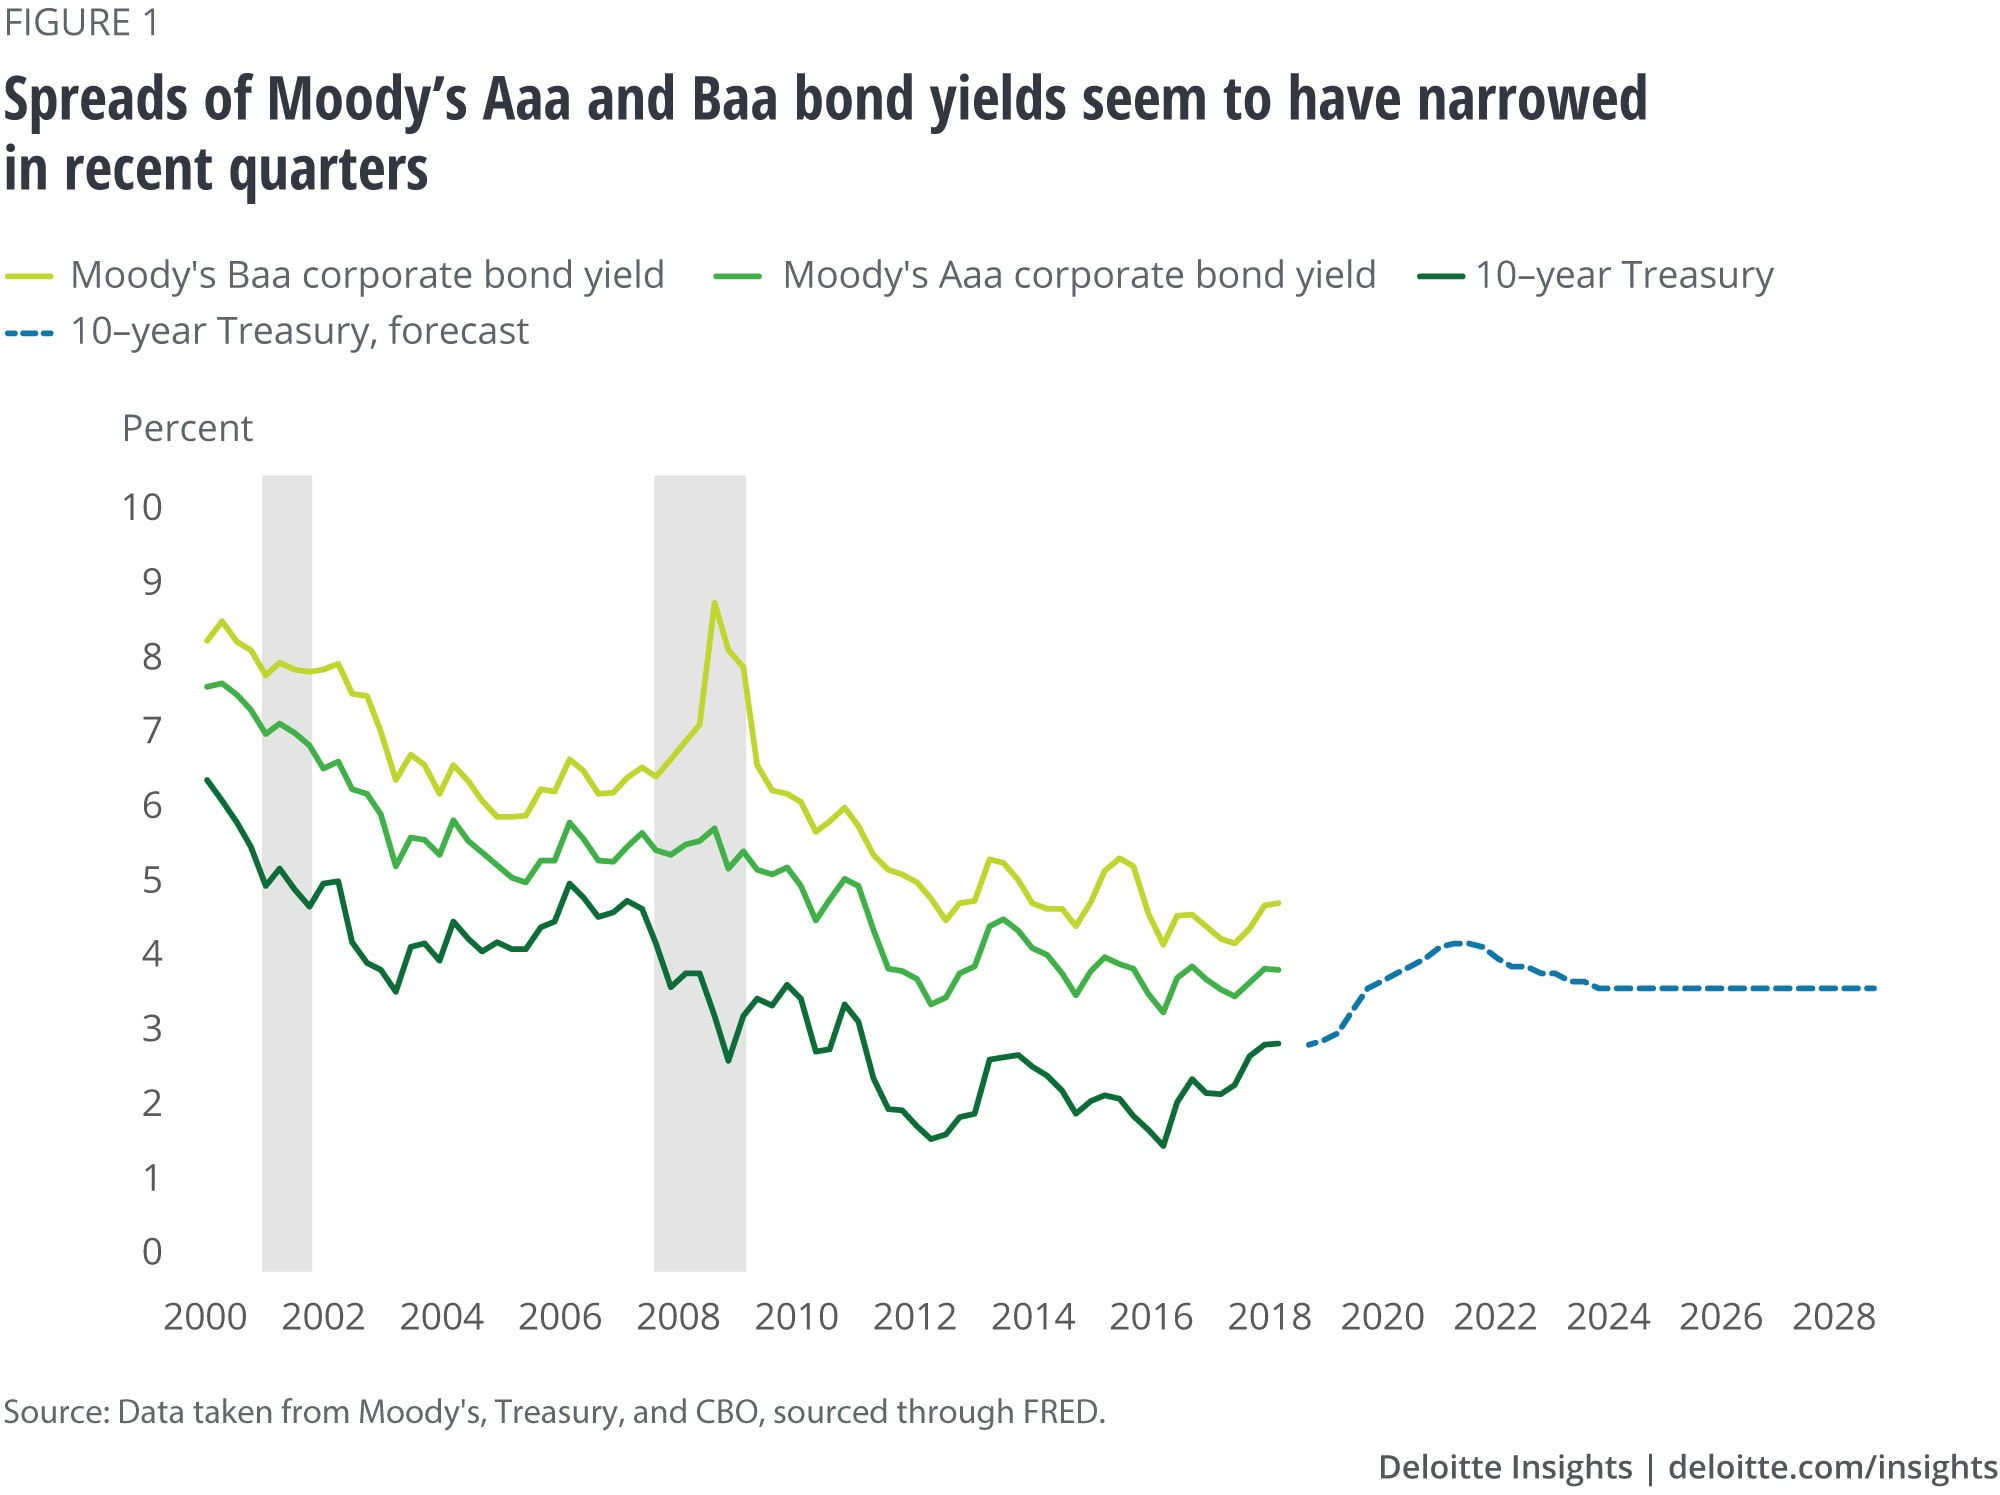 Spreads of Moody's Aaa and Baa bond yields seem to have narrowed in recent quarters